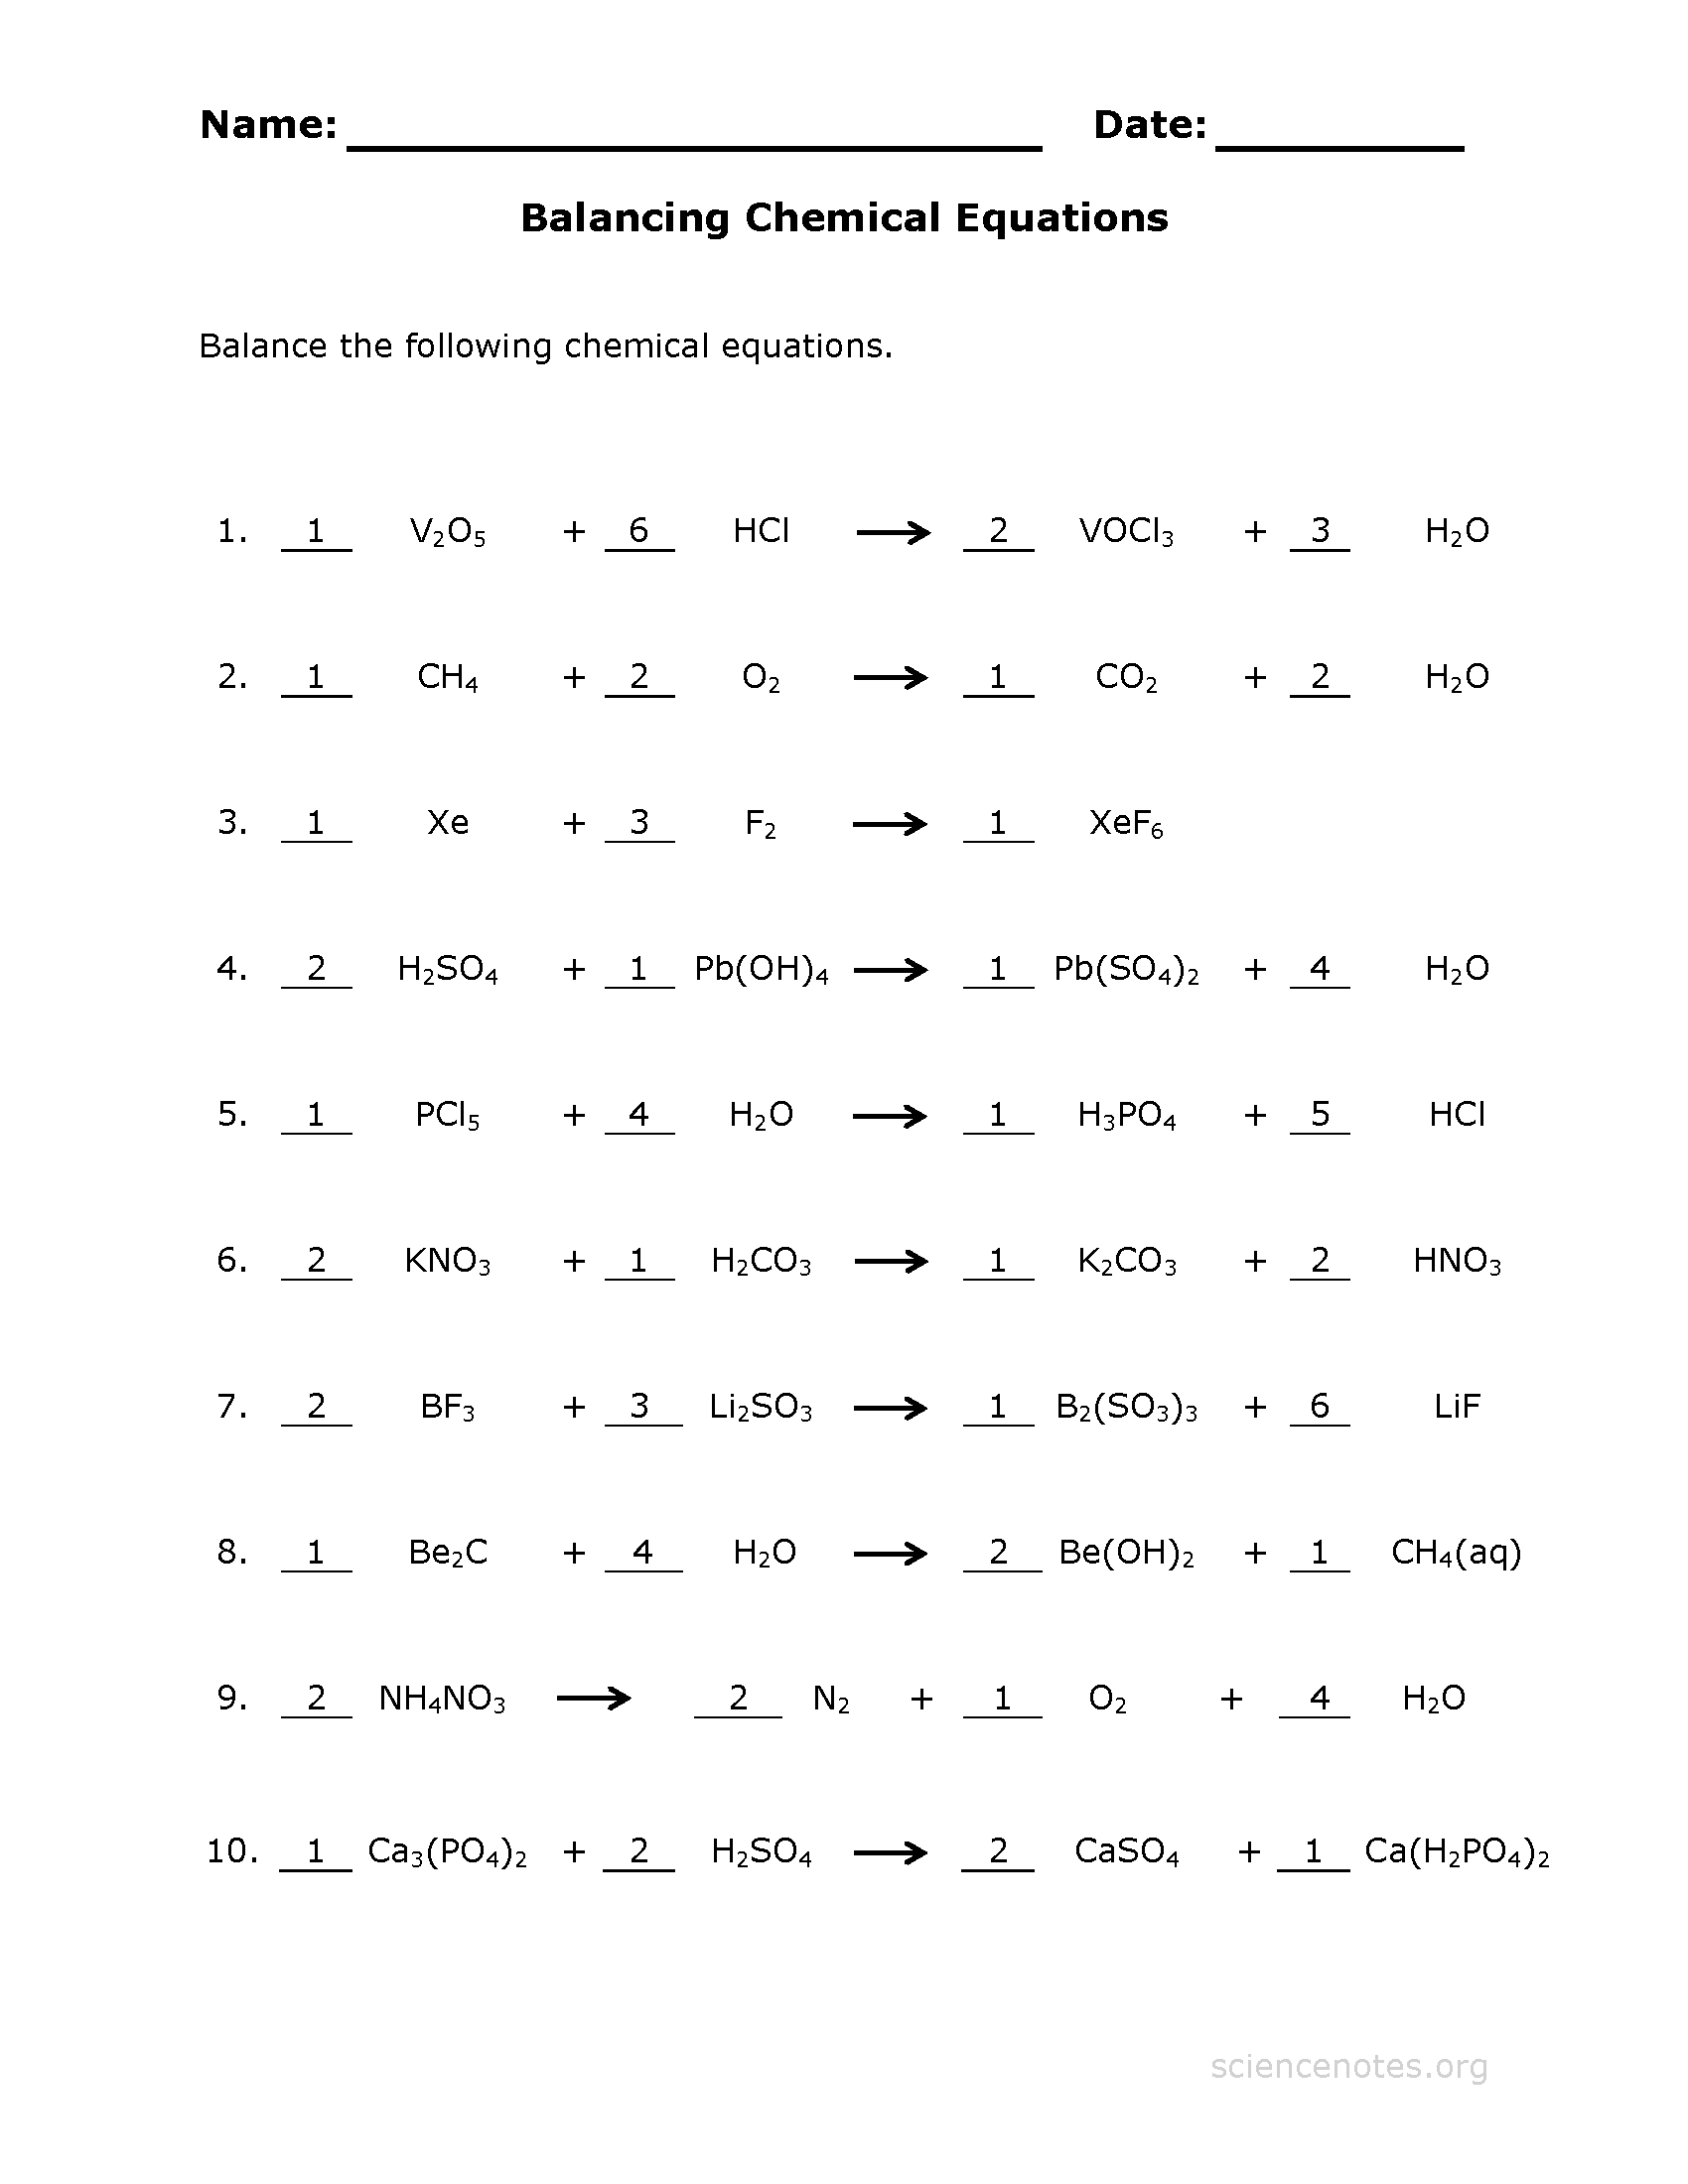 Balance Chemical Equations Worksheet 3 Answer Key Science Notes – Balancing Equations Worksheet Key